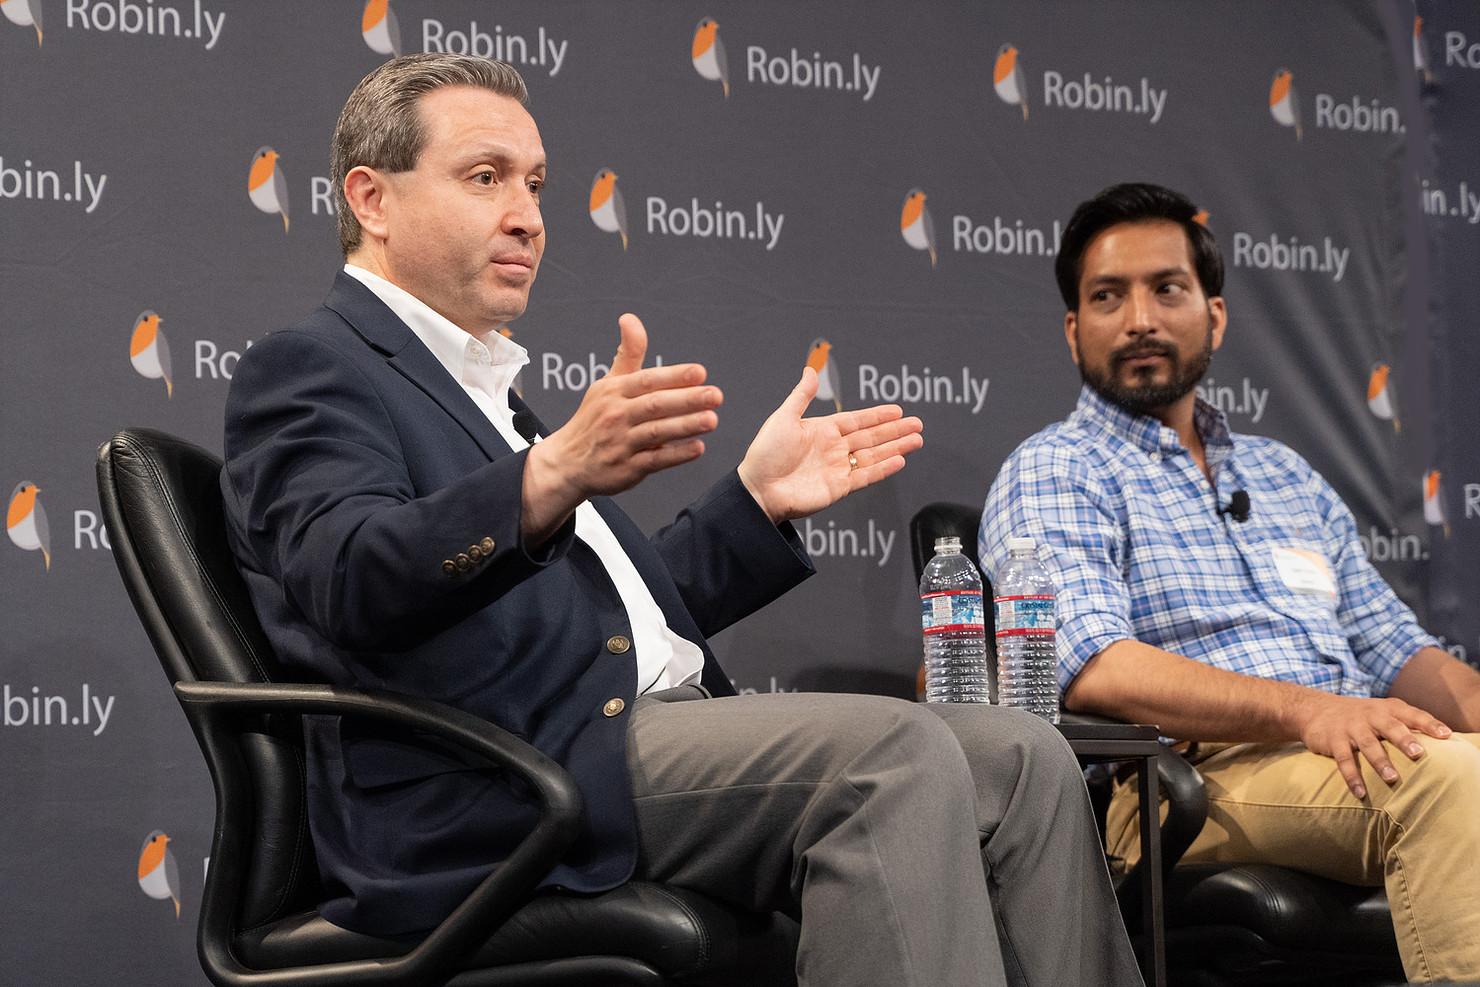 Louay Eldada, CEO & Co-Founder @ Quanergy and Nalin Gupta, Co-founder of Autonomous Driving Division (Auro) @ Ridecell in Panel Discussion, Robin.ly 2019 AI Commercialization Conference